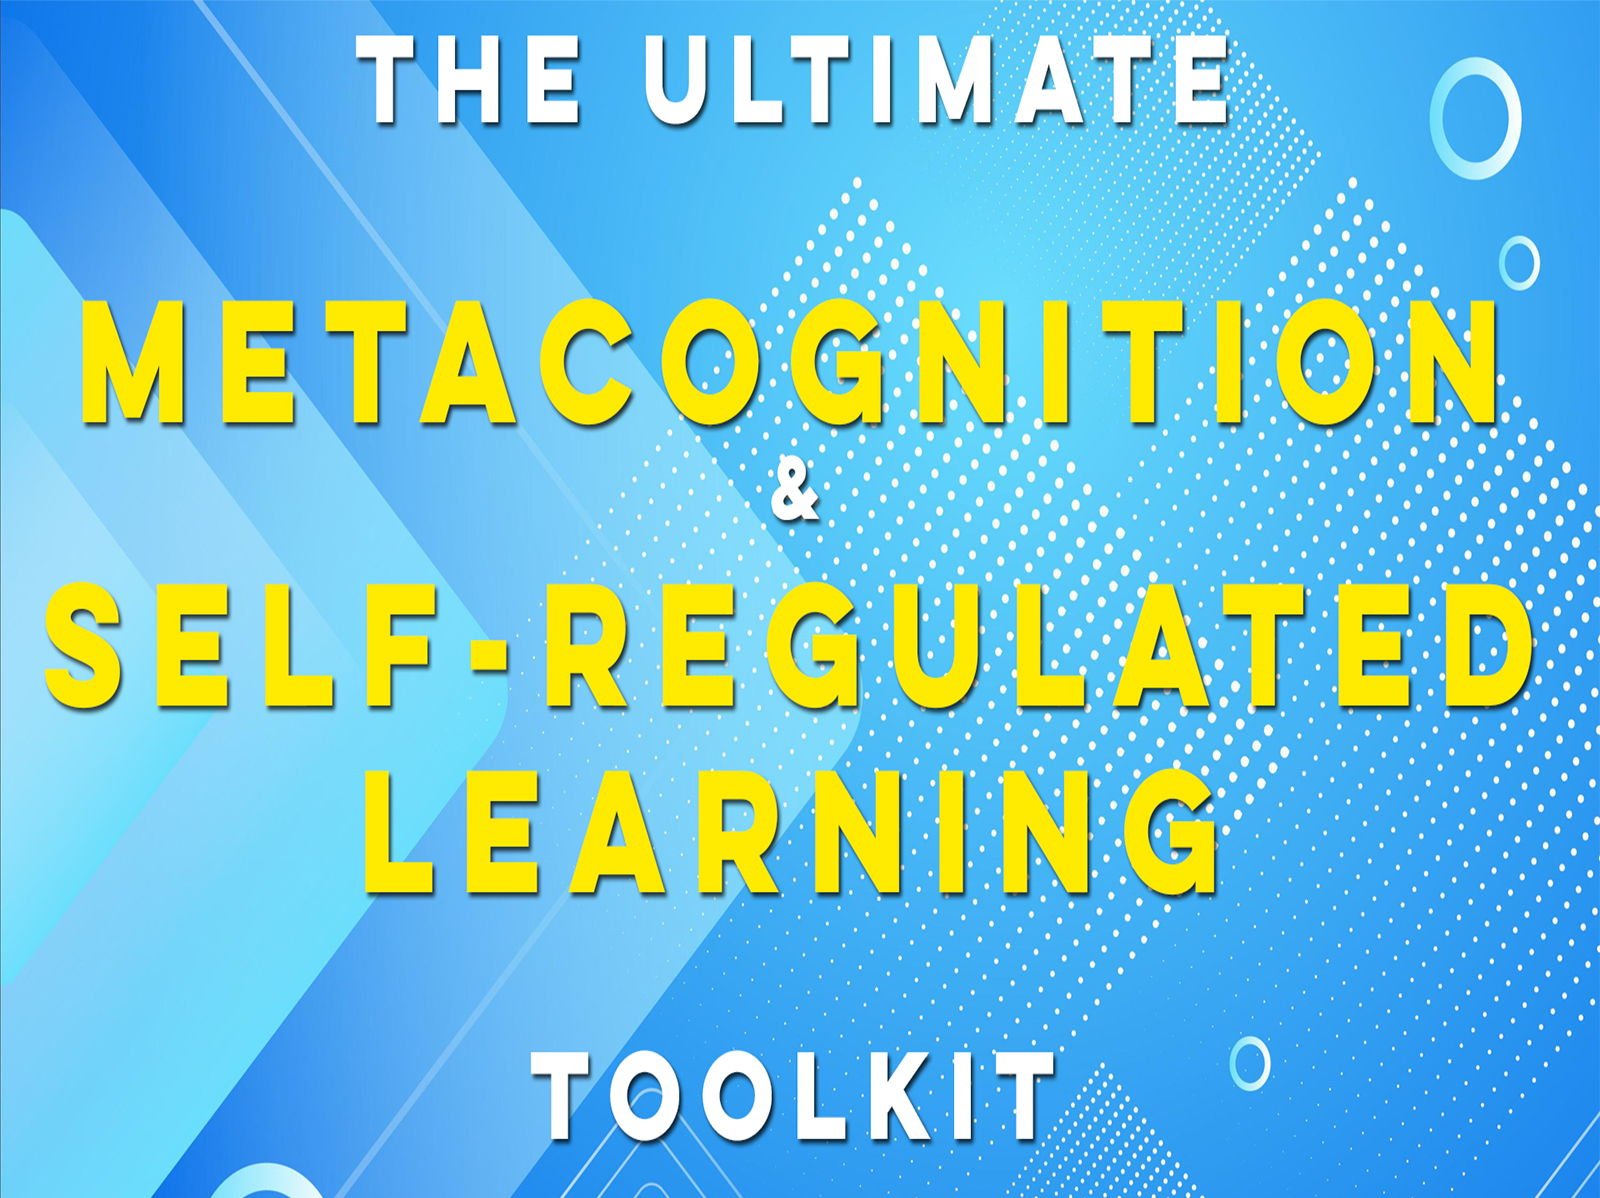 The Ultimate Metacognition & Self-Regulated Learning Toolkit